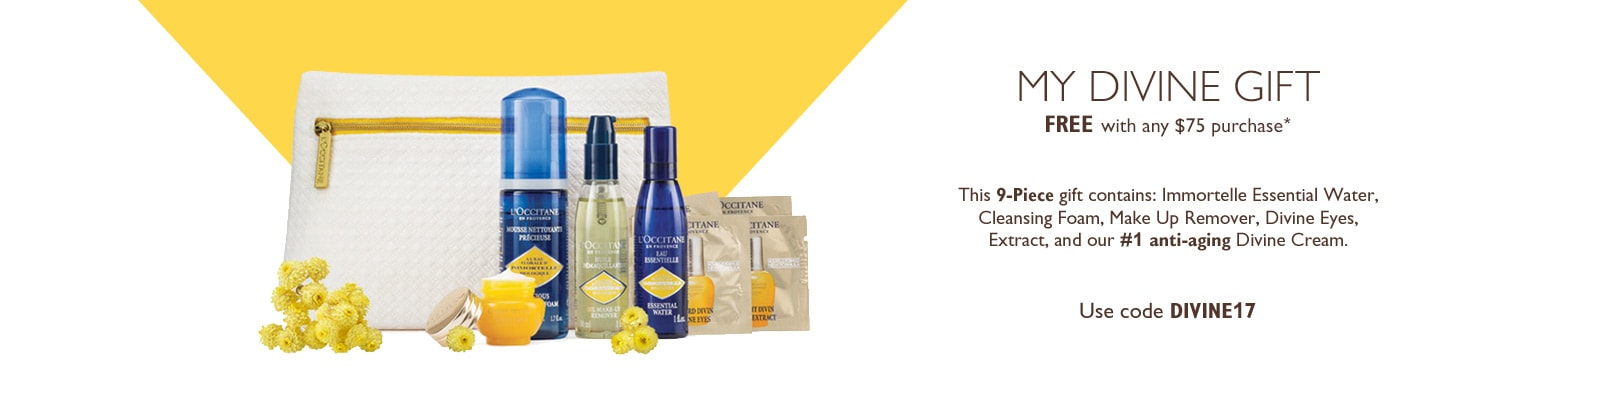 Receive a free 9- piece bonus gift with your $75 L'Occitane purchase